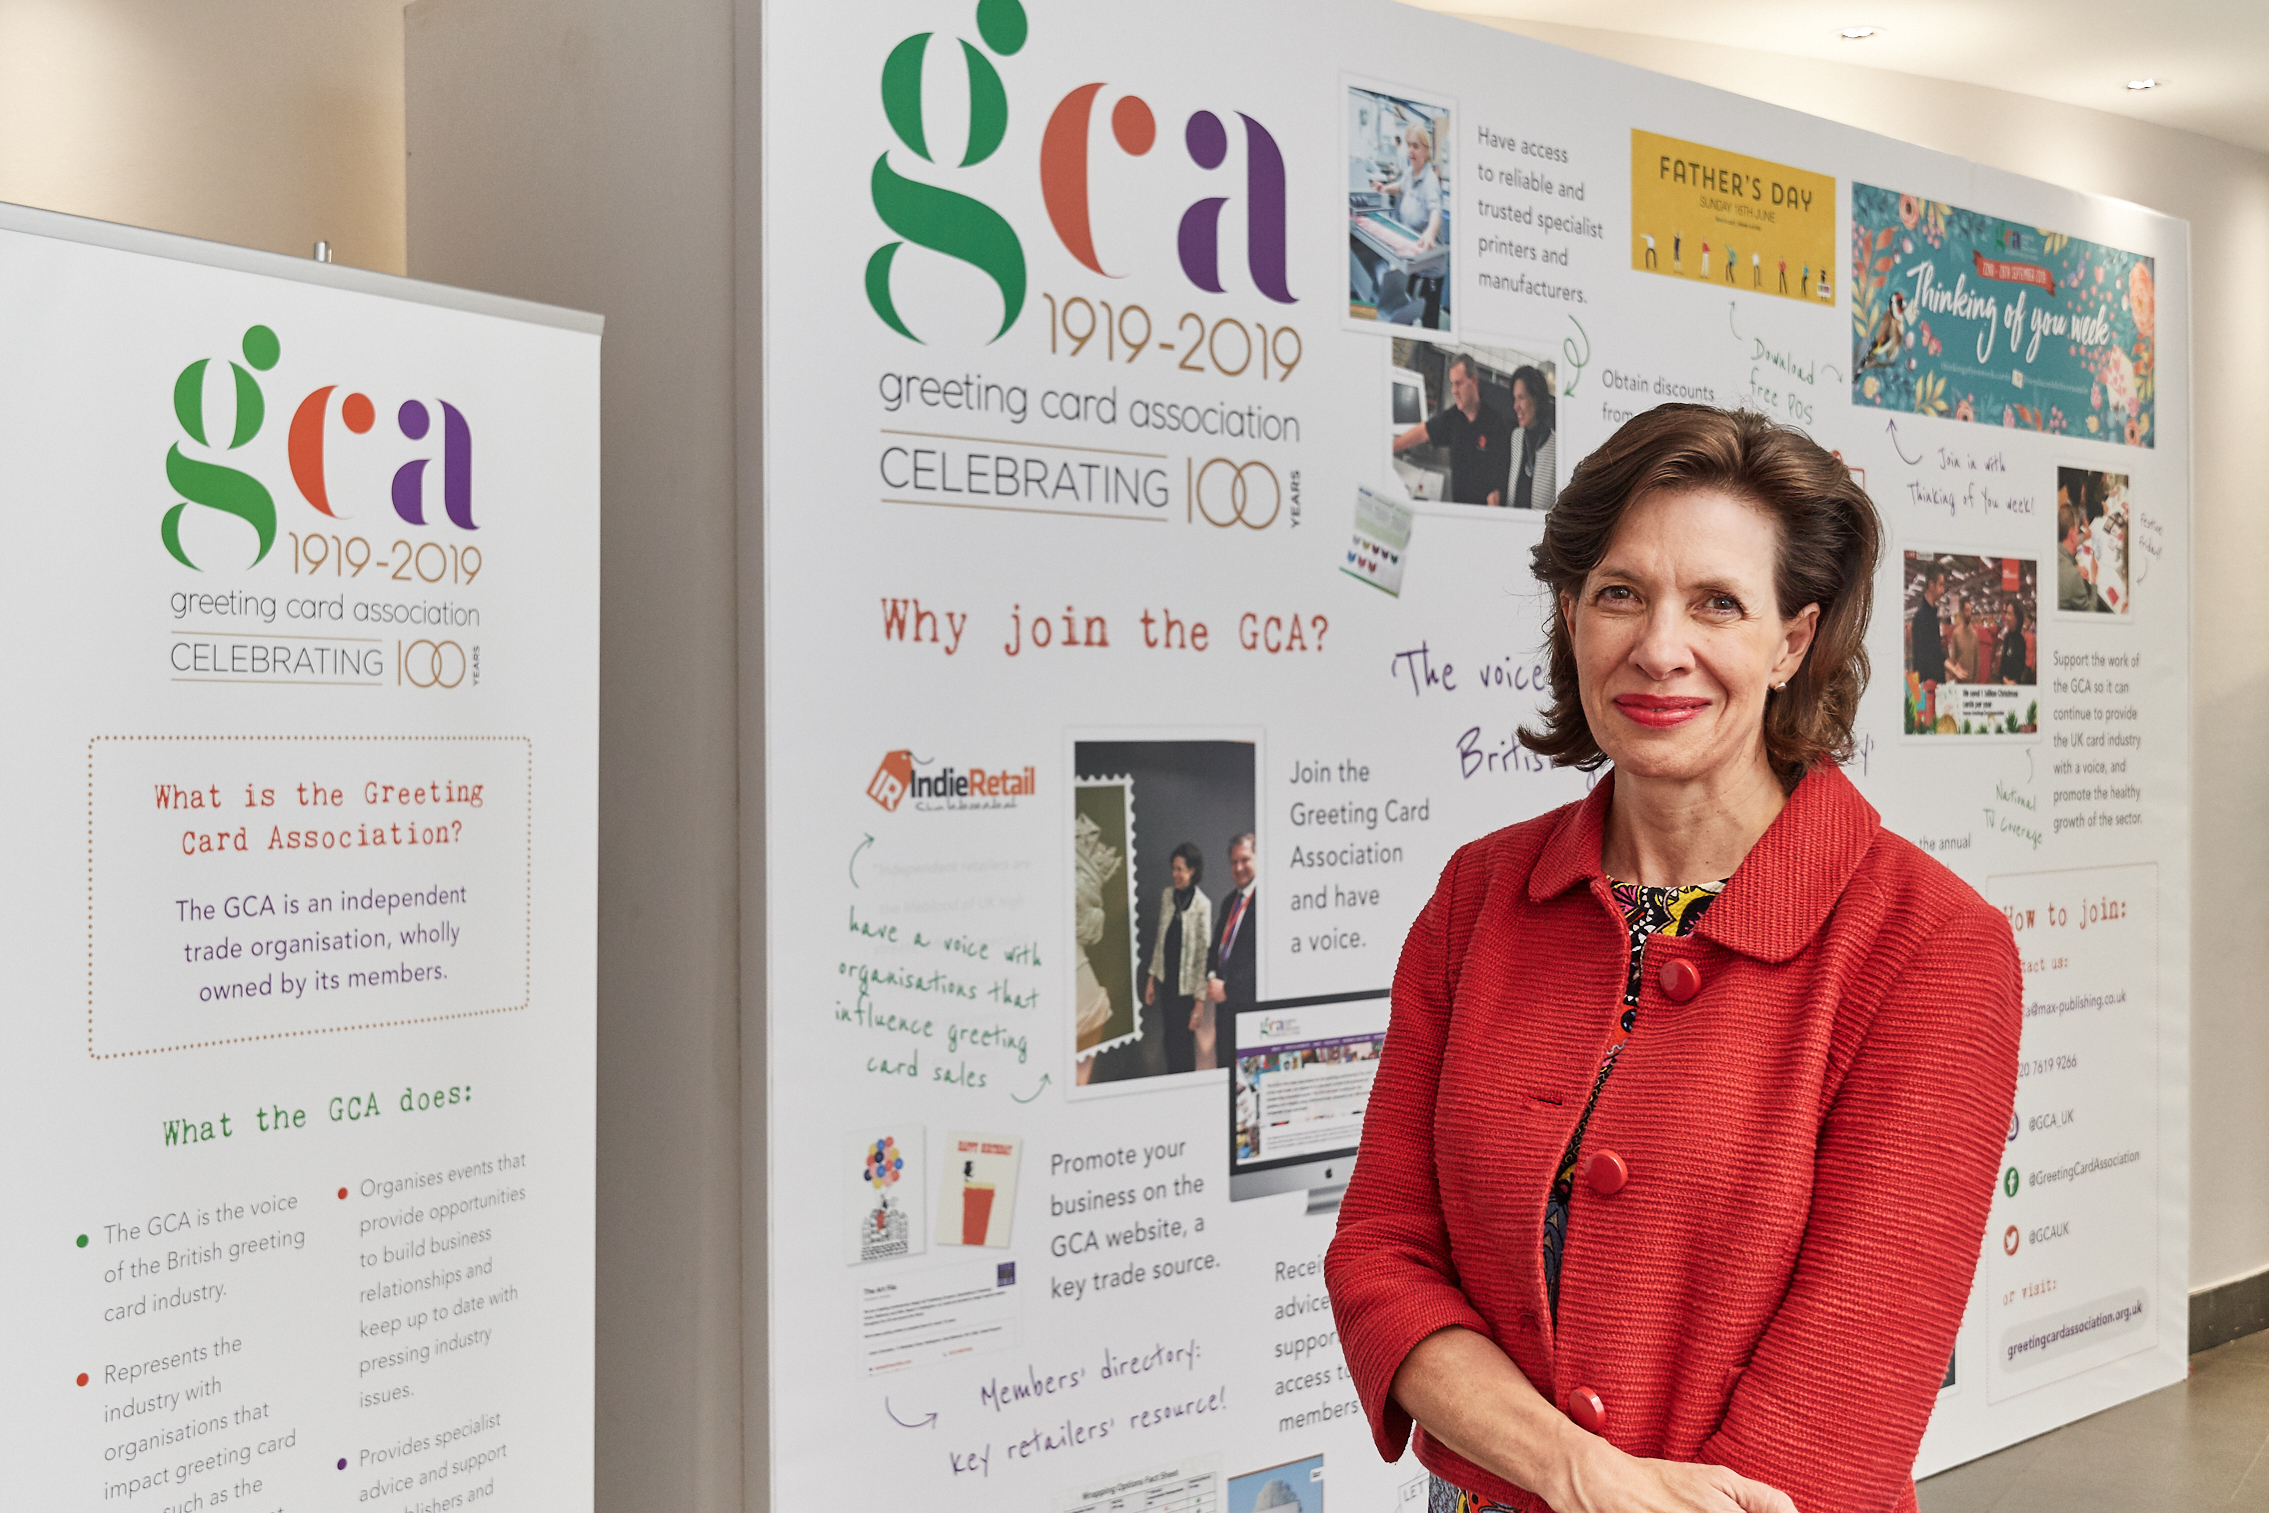 Above: Being driven by Amanda Fergusson, ceo of the GCA, the #cardtokeep Instagram initiative is part of the Association's 100 anniversary activities.